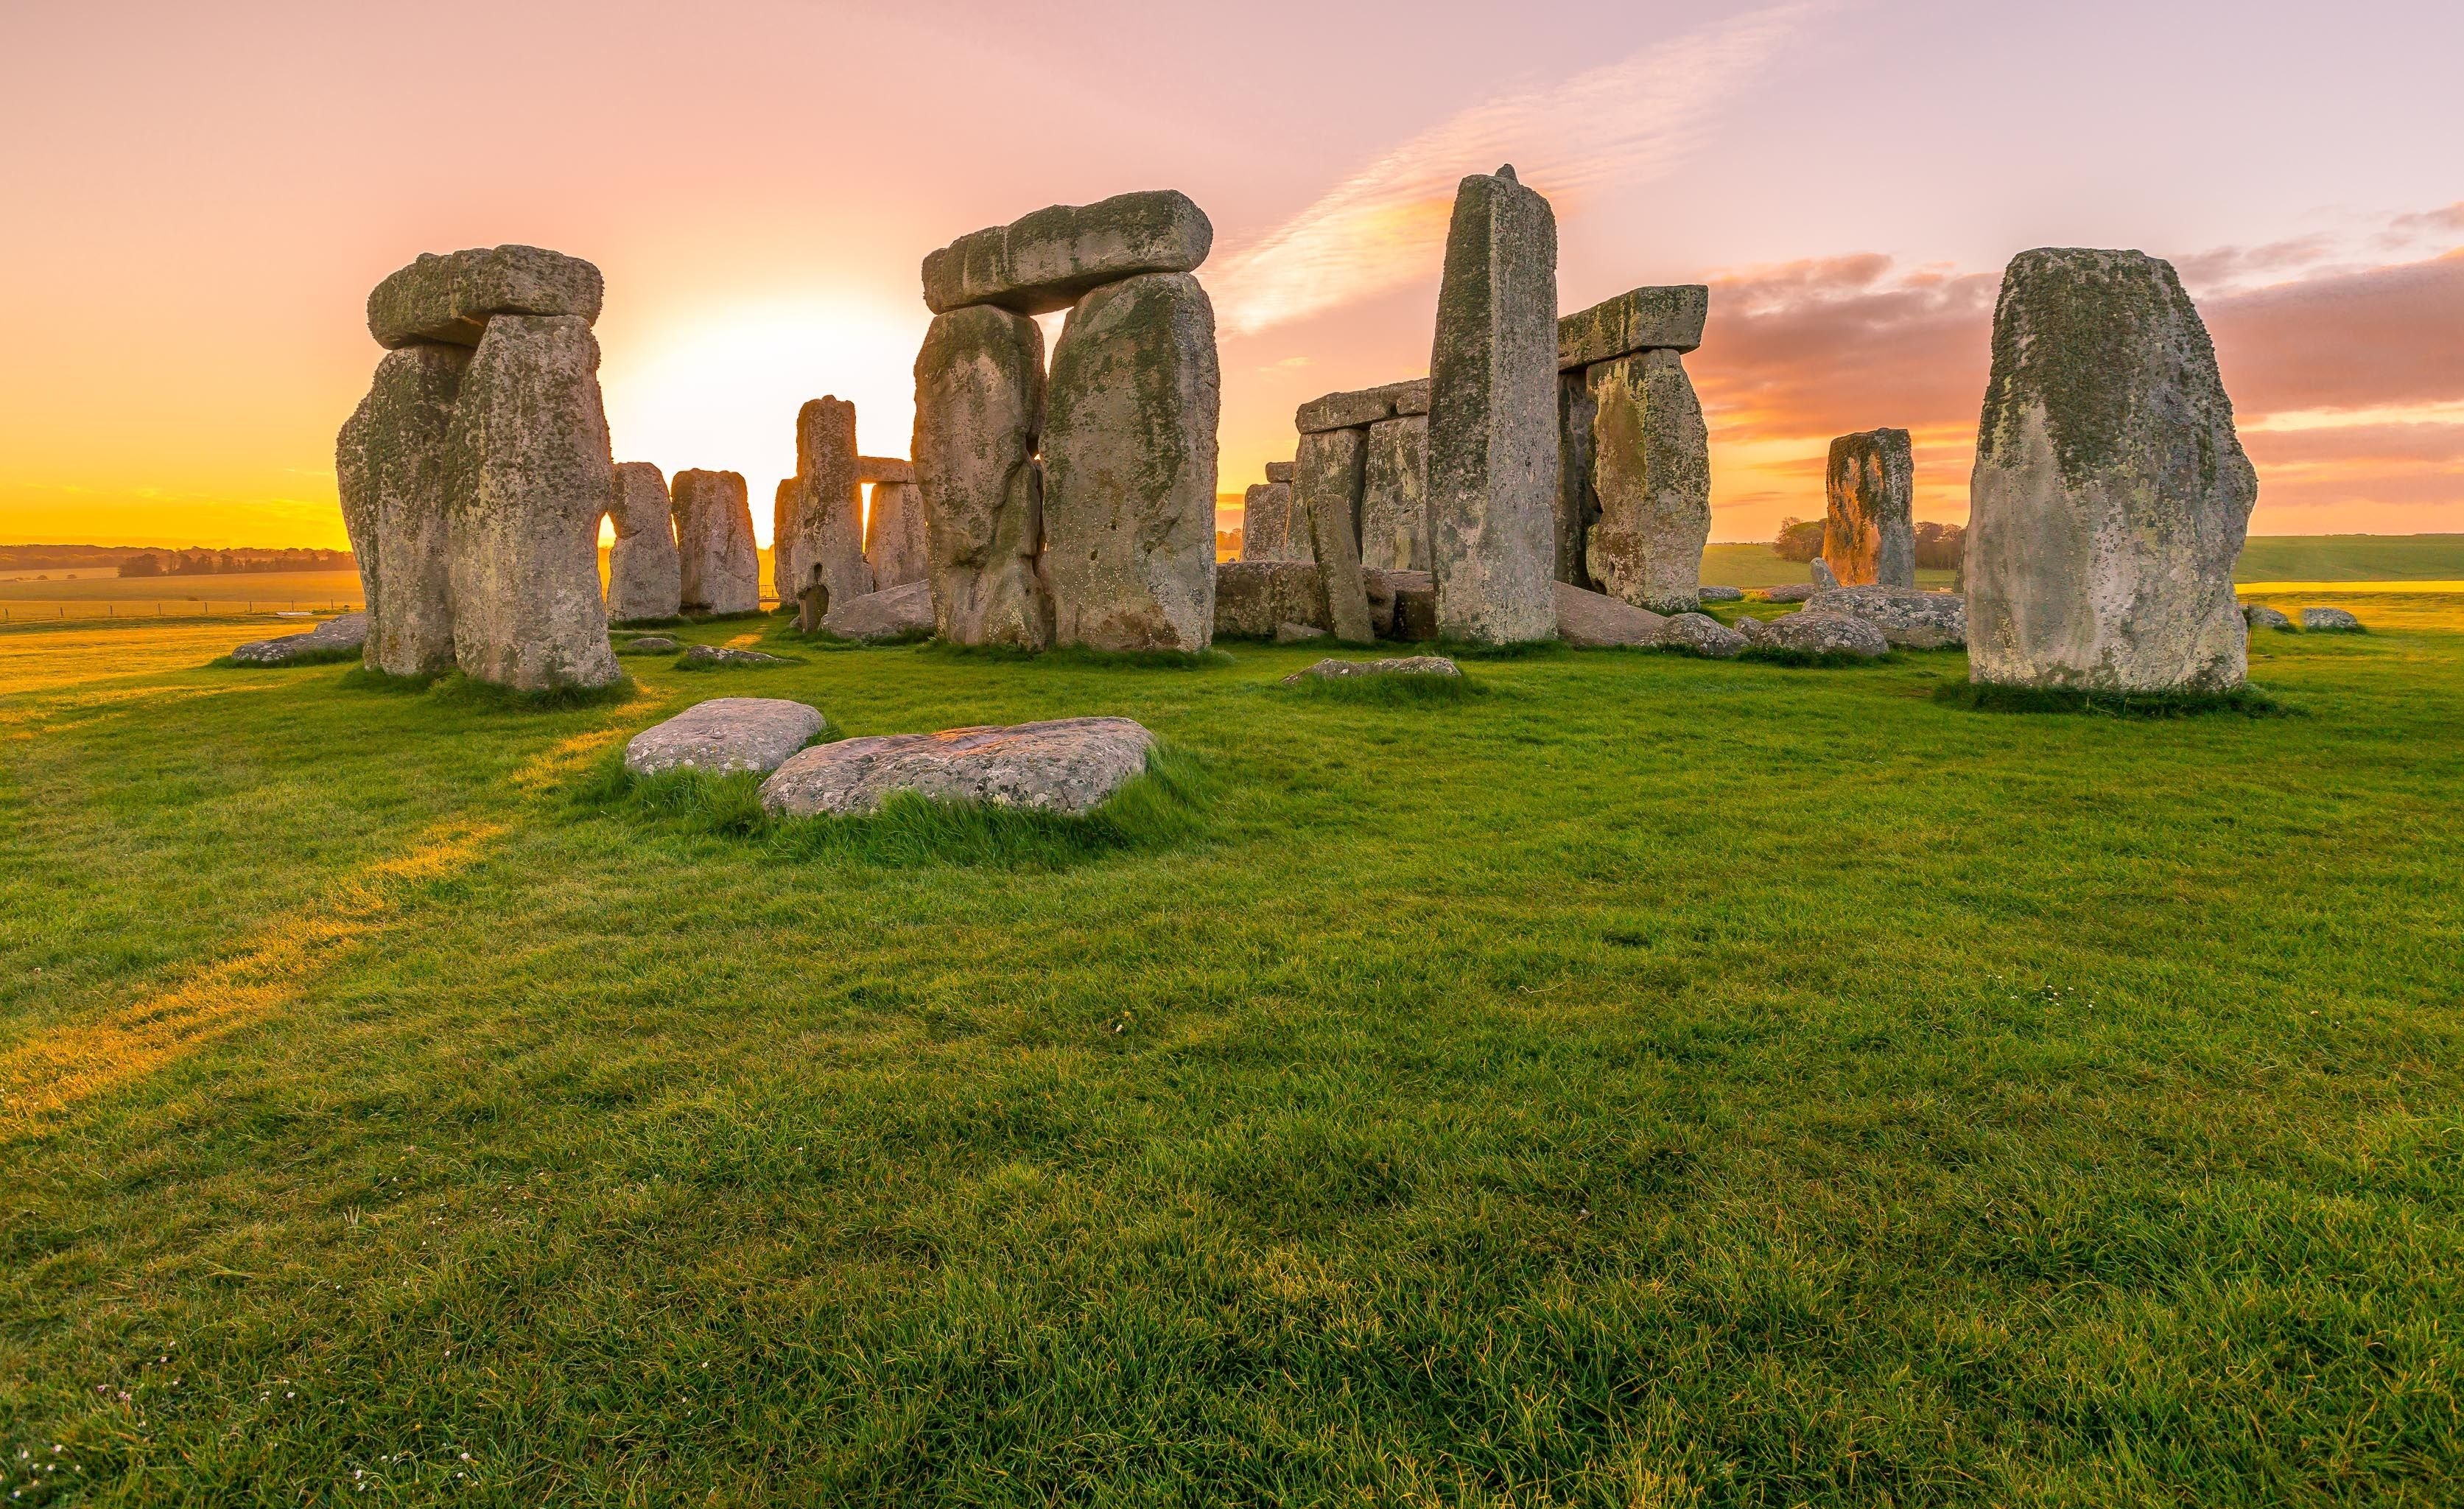 The mystery of where Stonehenge's giant slabs came from may now be solved